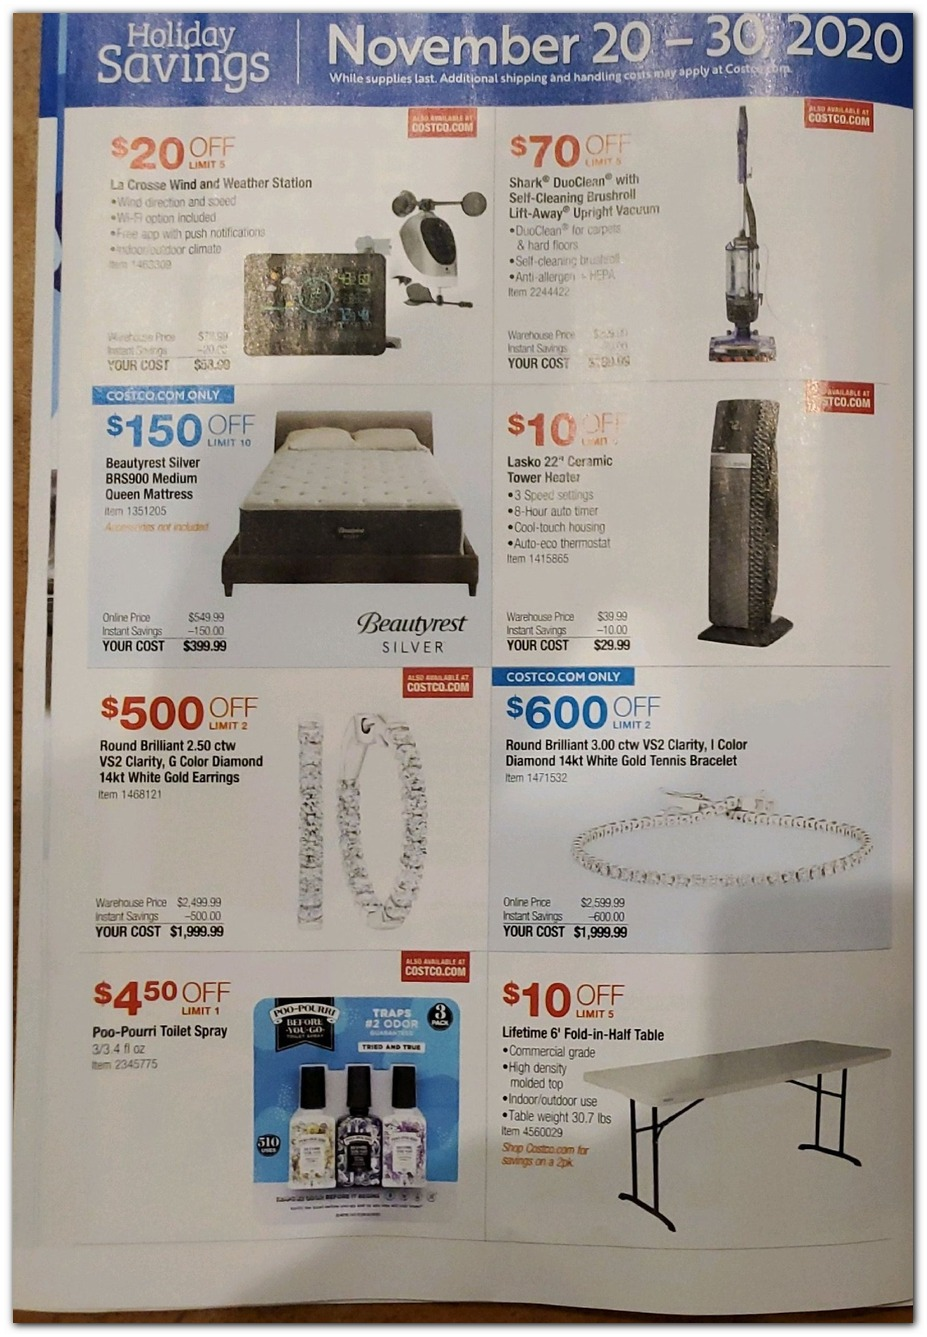 Nov 20 Sale -Vacuums / Jewelry